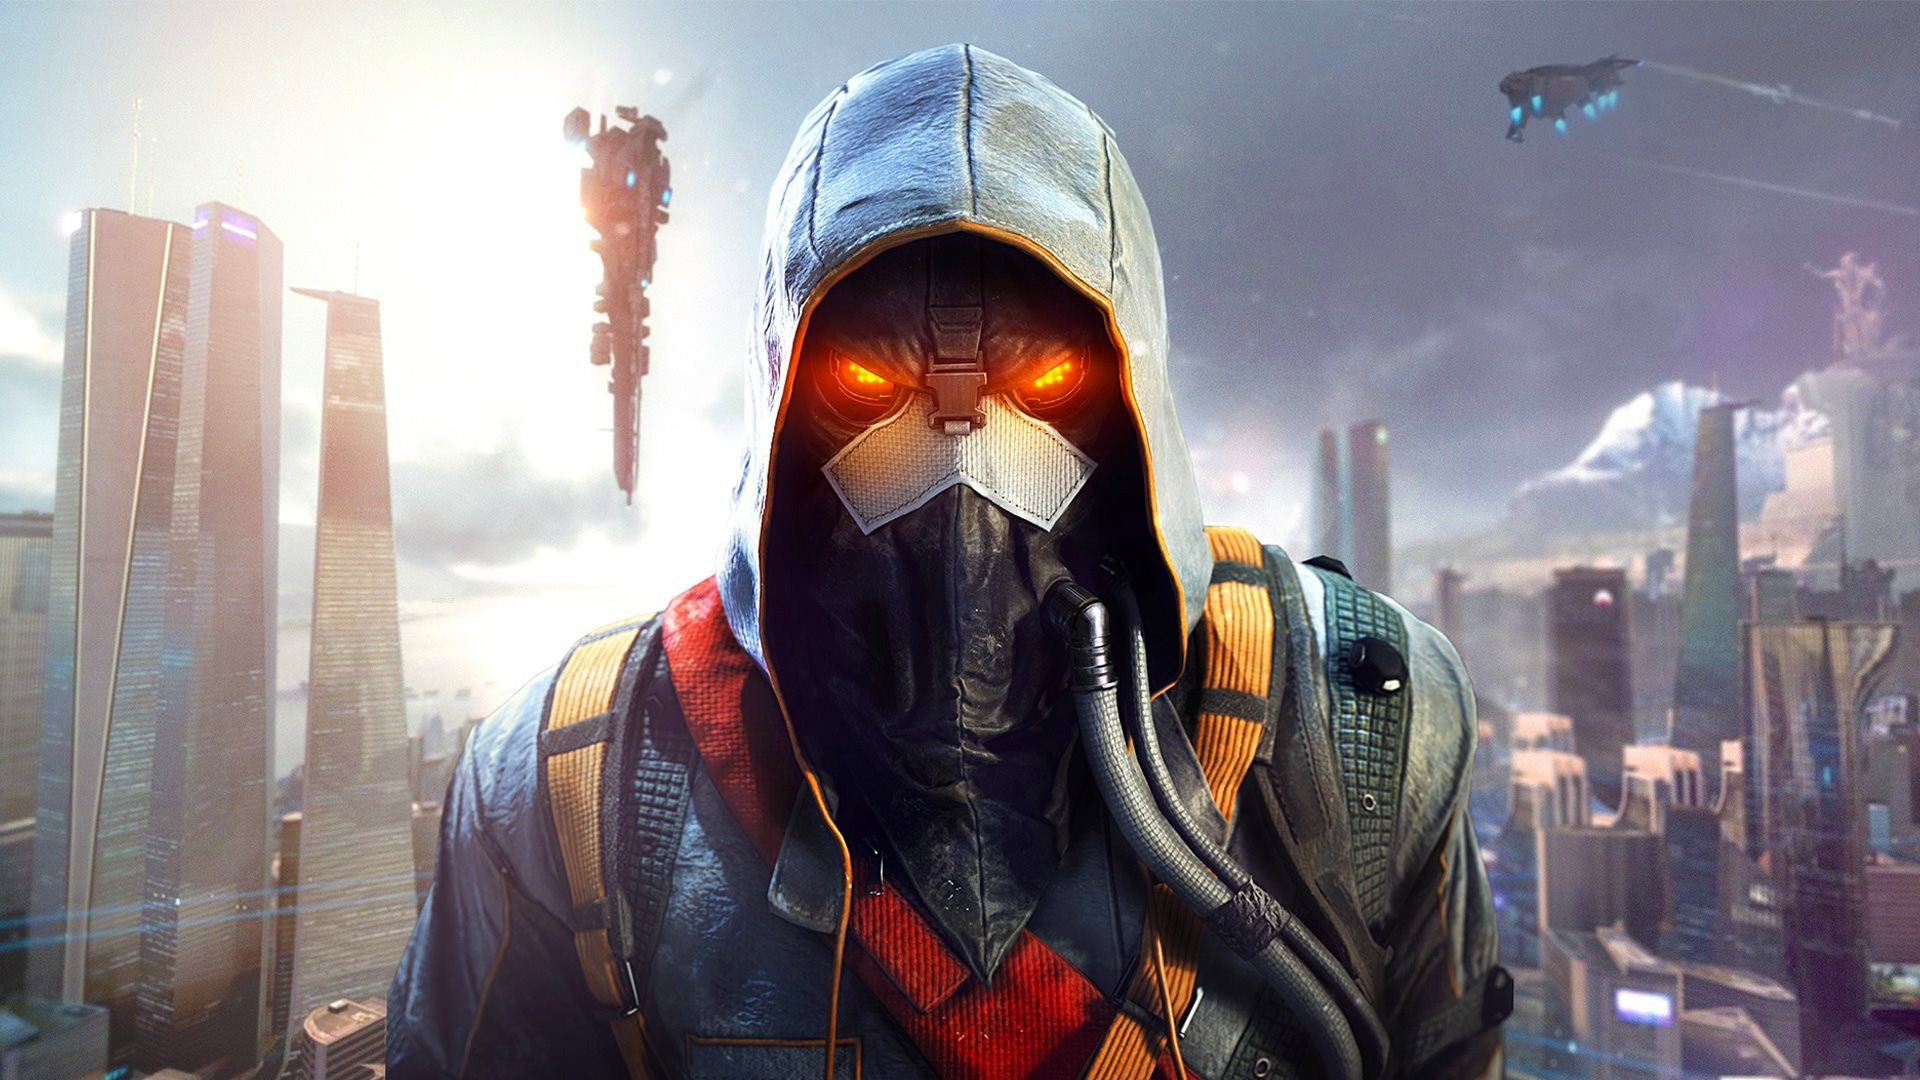 !  @ # $% In Game Pass and the end of the Killzone franchise